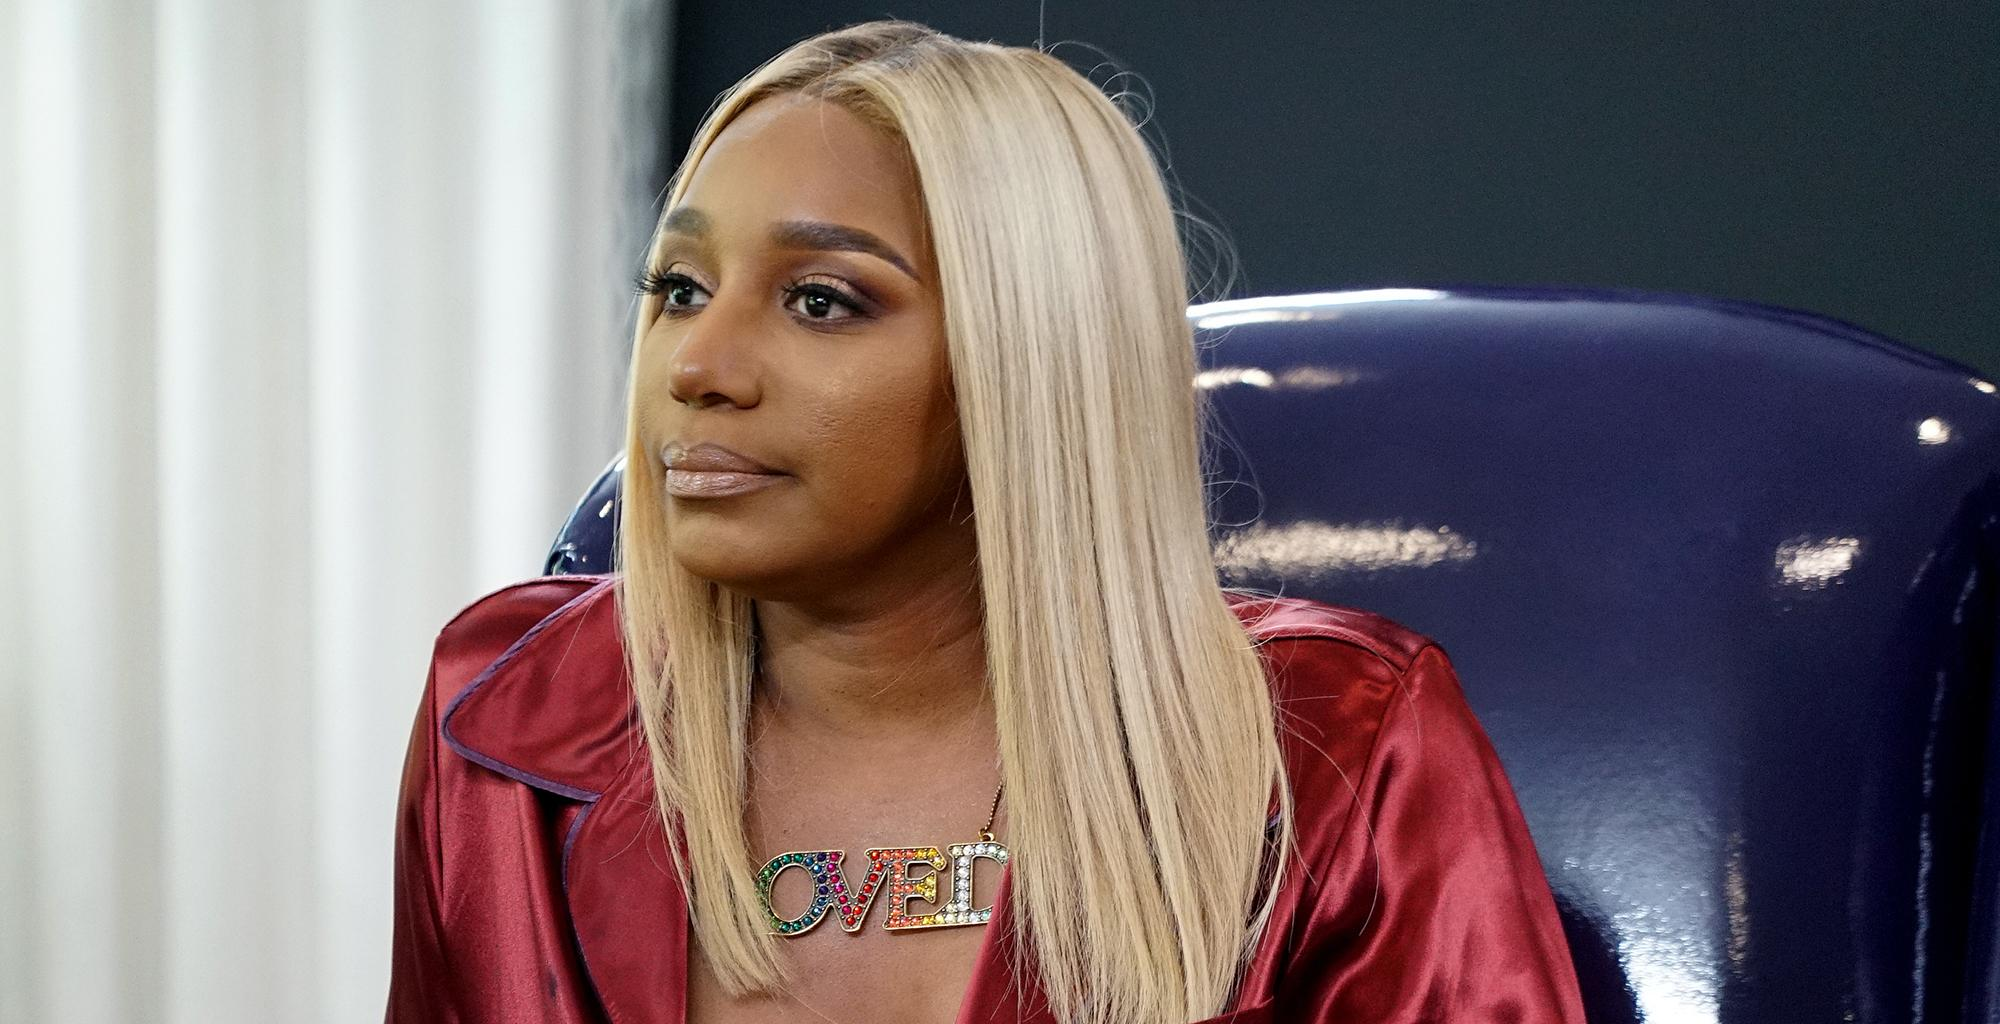 NeNe Leakes Is Proud Of Her Growth - See Her Latest Message To Fans